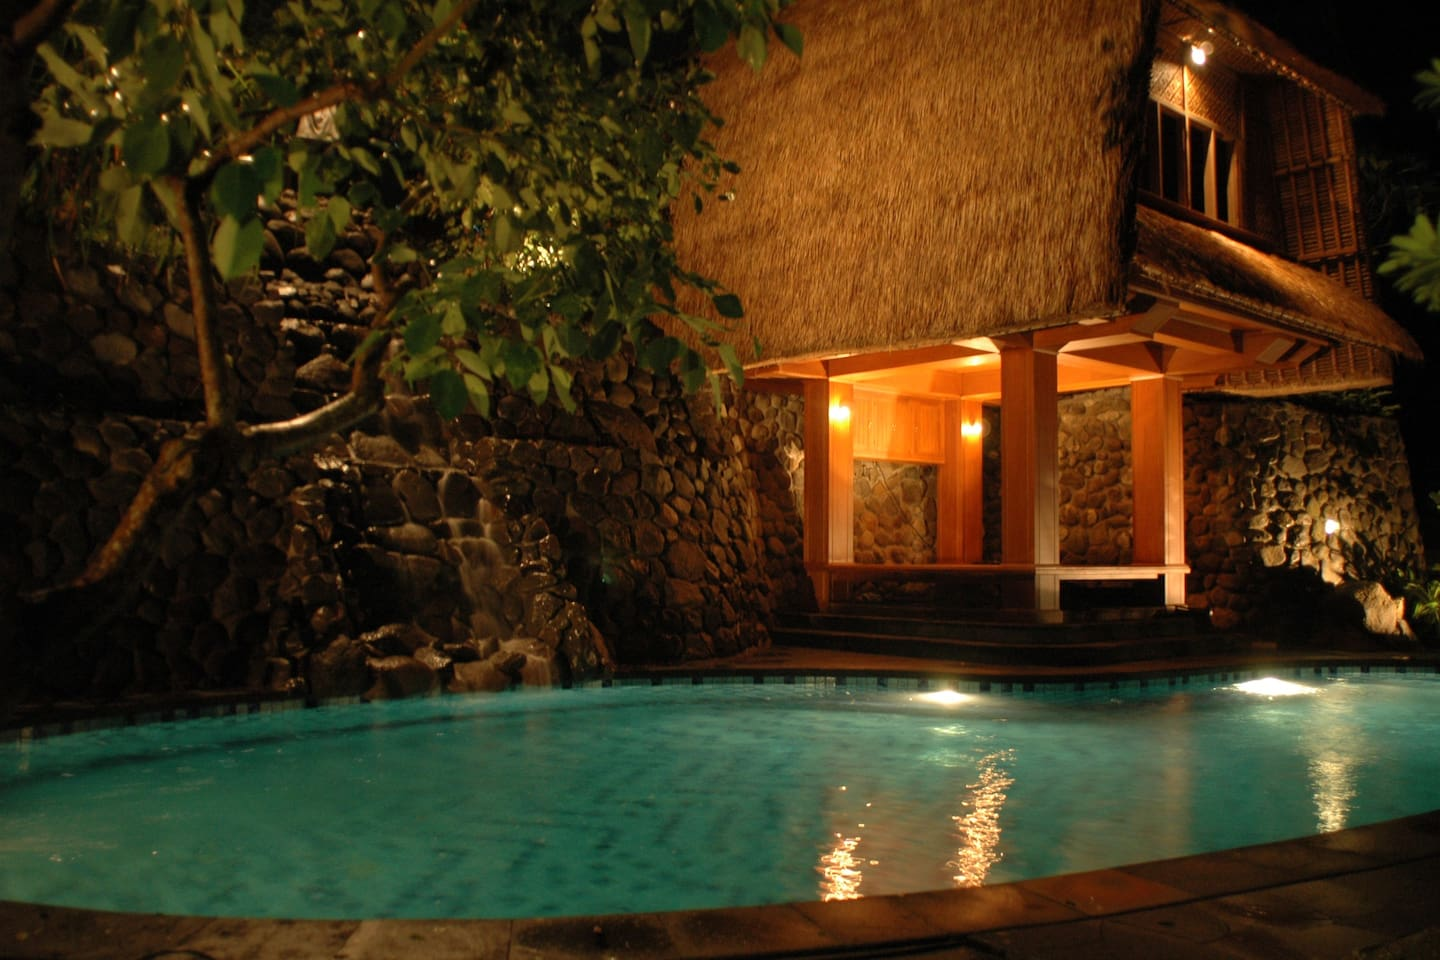 Our pool at night